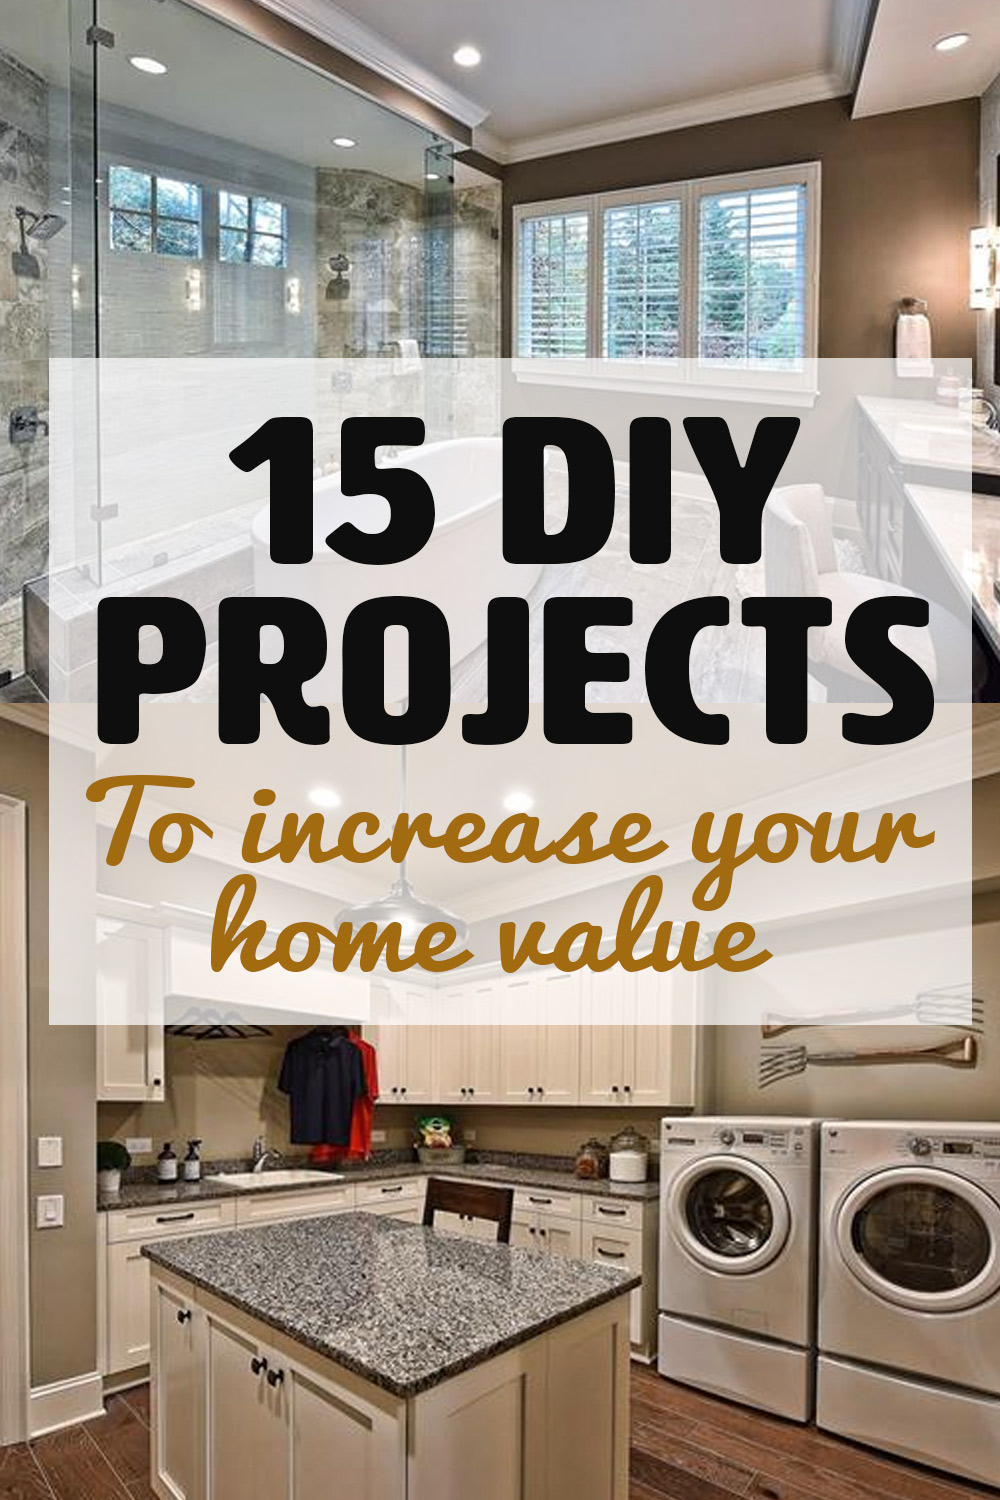 15 diy projects to increase your home value sycamore for How to increase home value